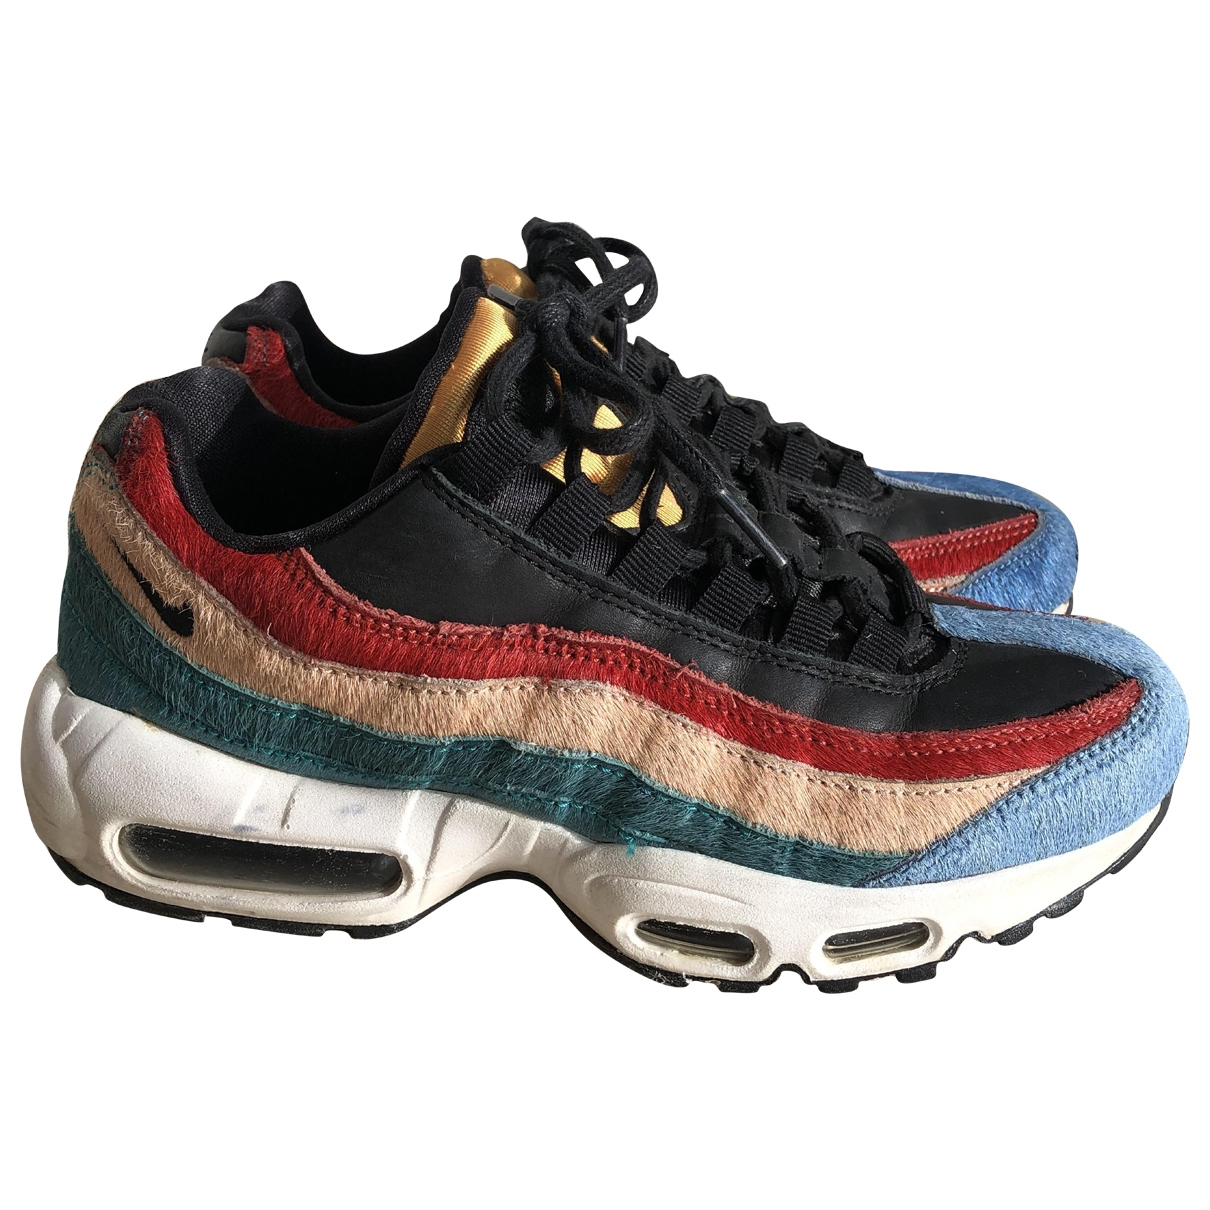 Nike Air Max 95 Multicolour Pony-style calfskin Trainers for Women 38 EU